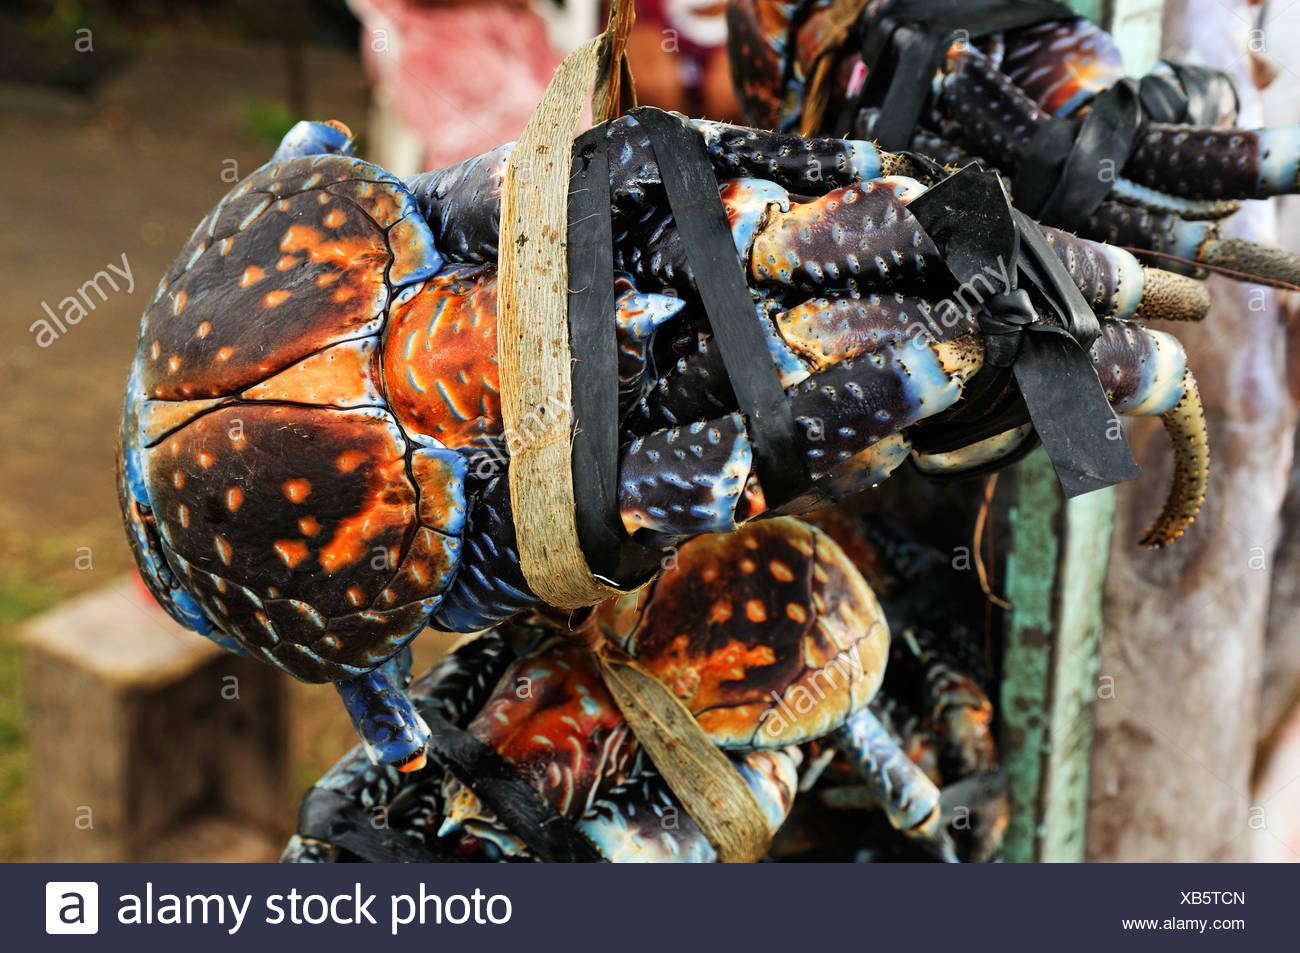 Coconut crabs tied up at a market stall, Papeete, Tahiti, Society Islands, French Polynesia, Pacific Ocean - Stock Image